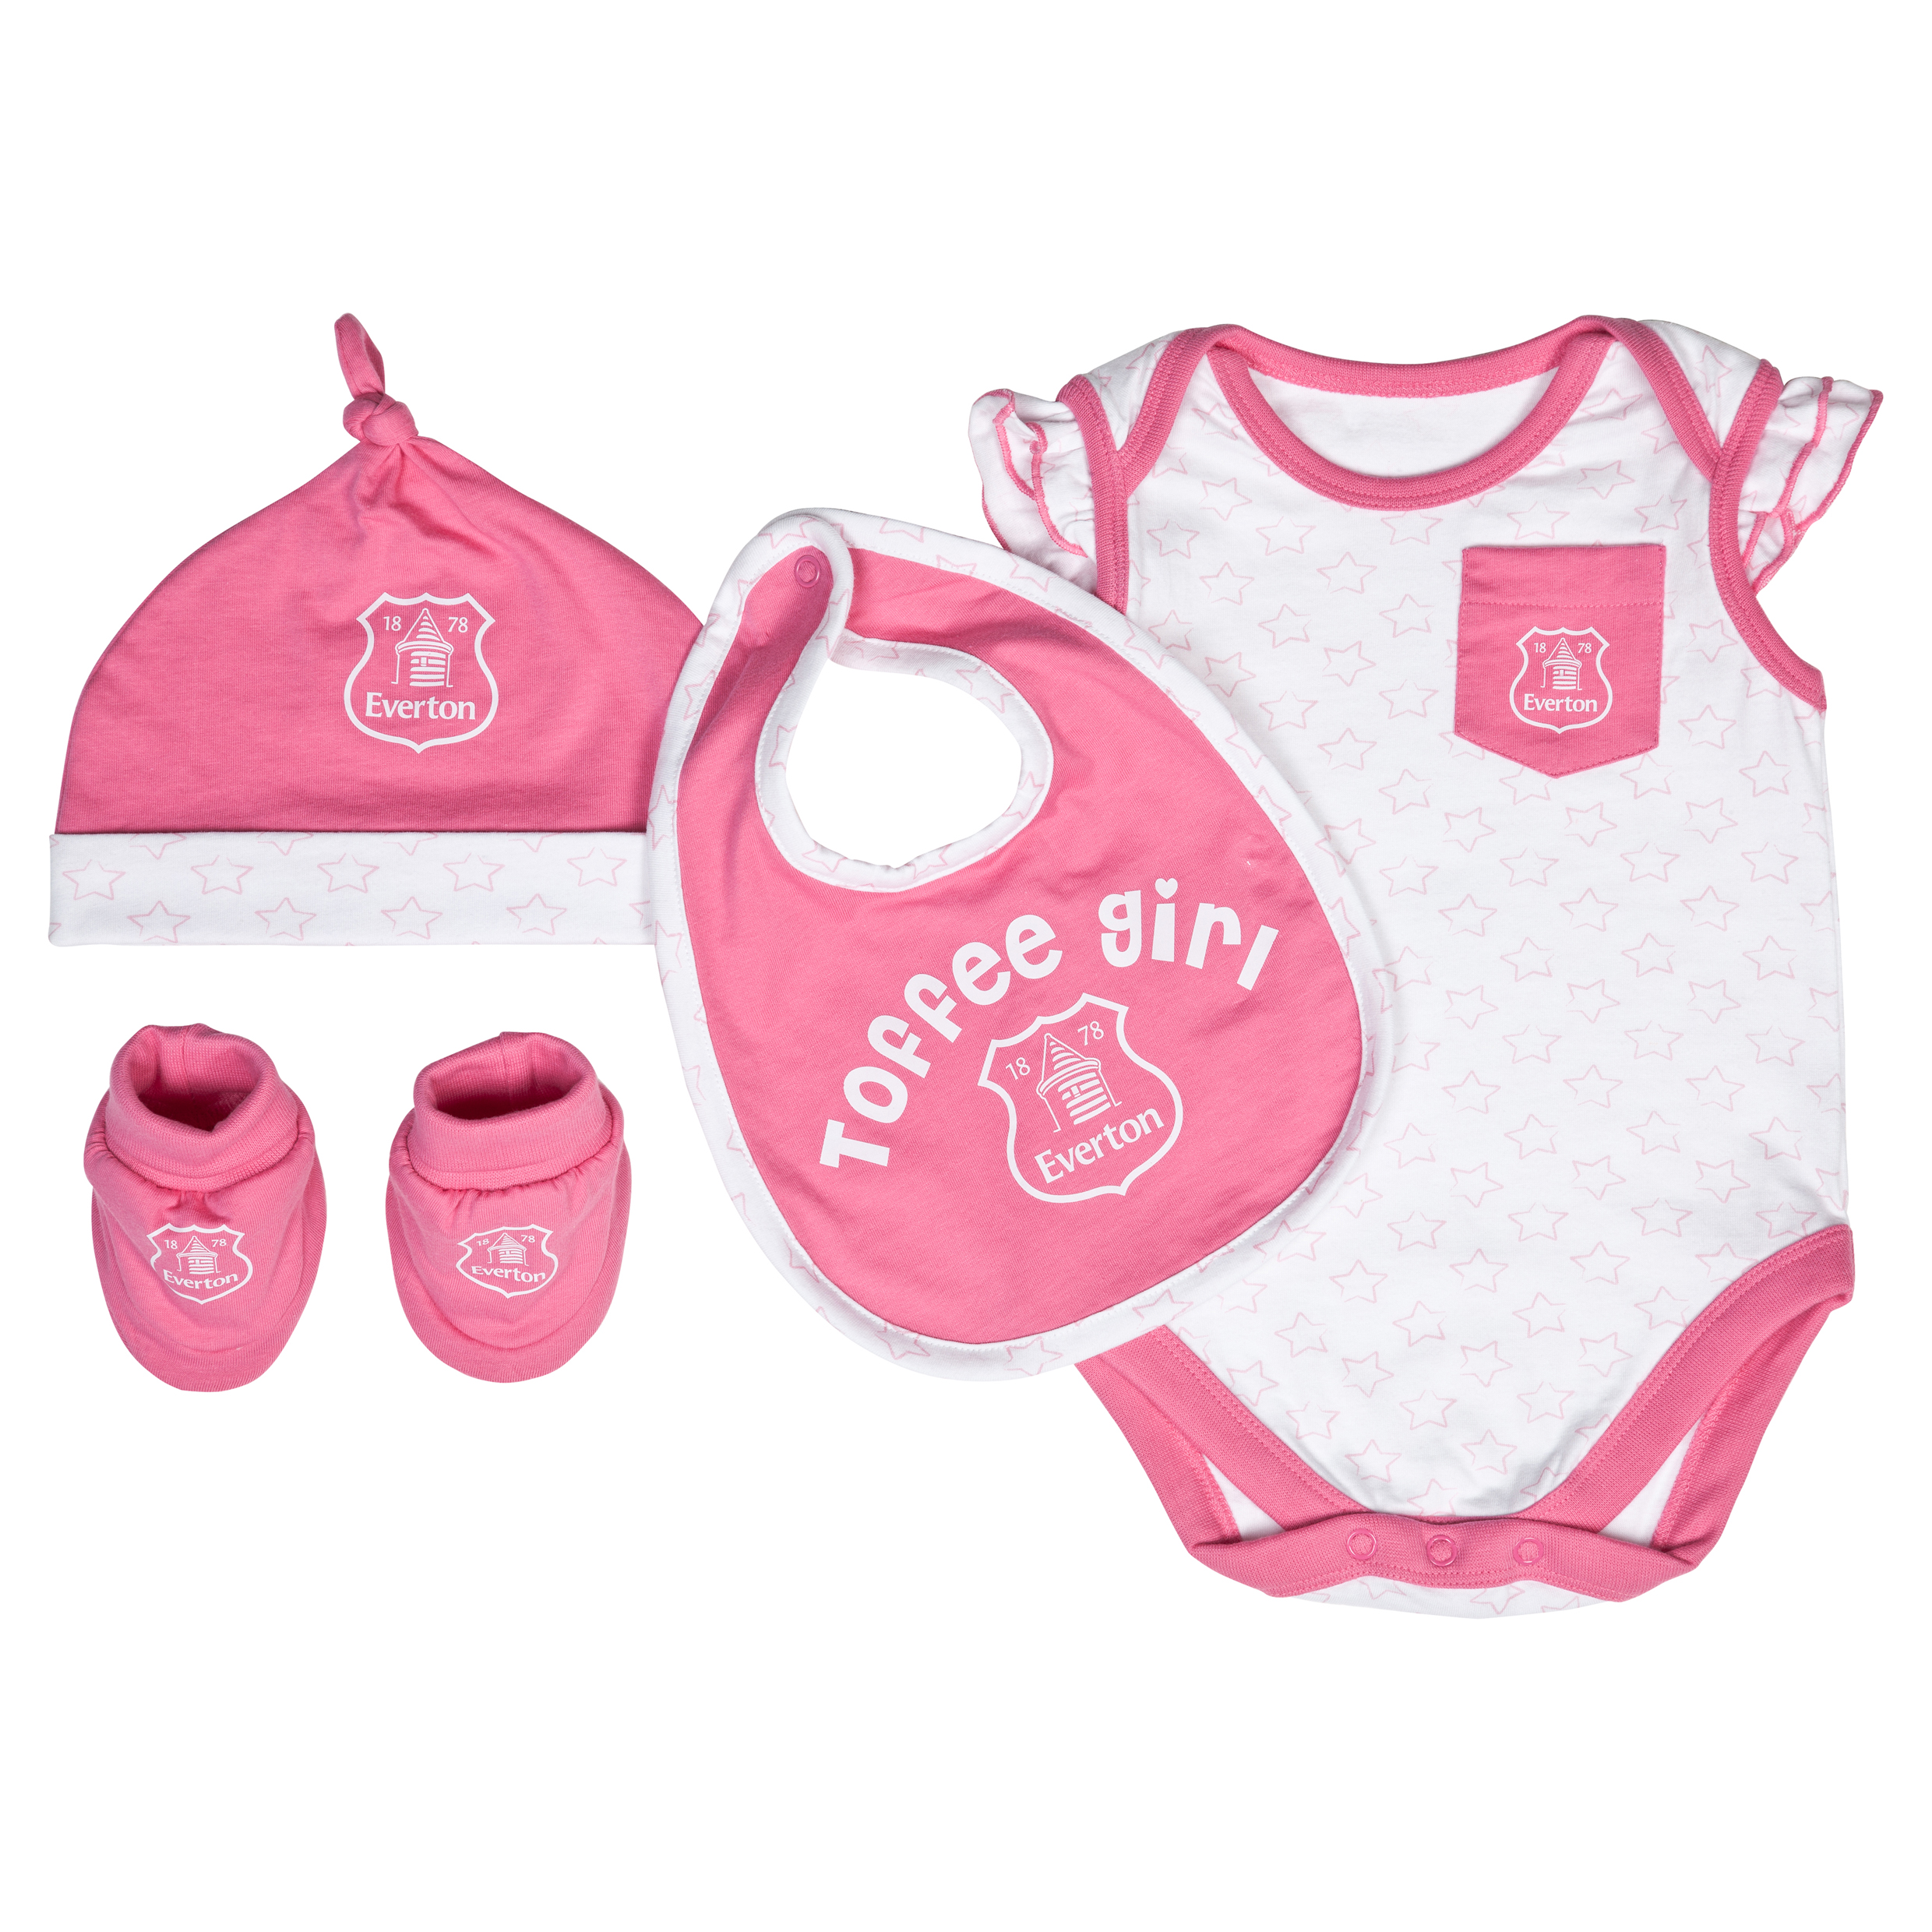 Everton Stars Gift Set - White/Pink - Baby